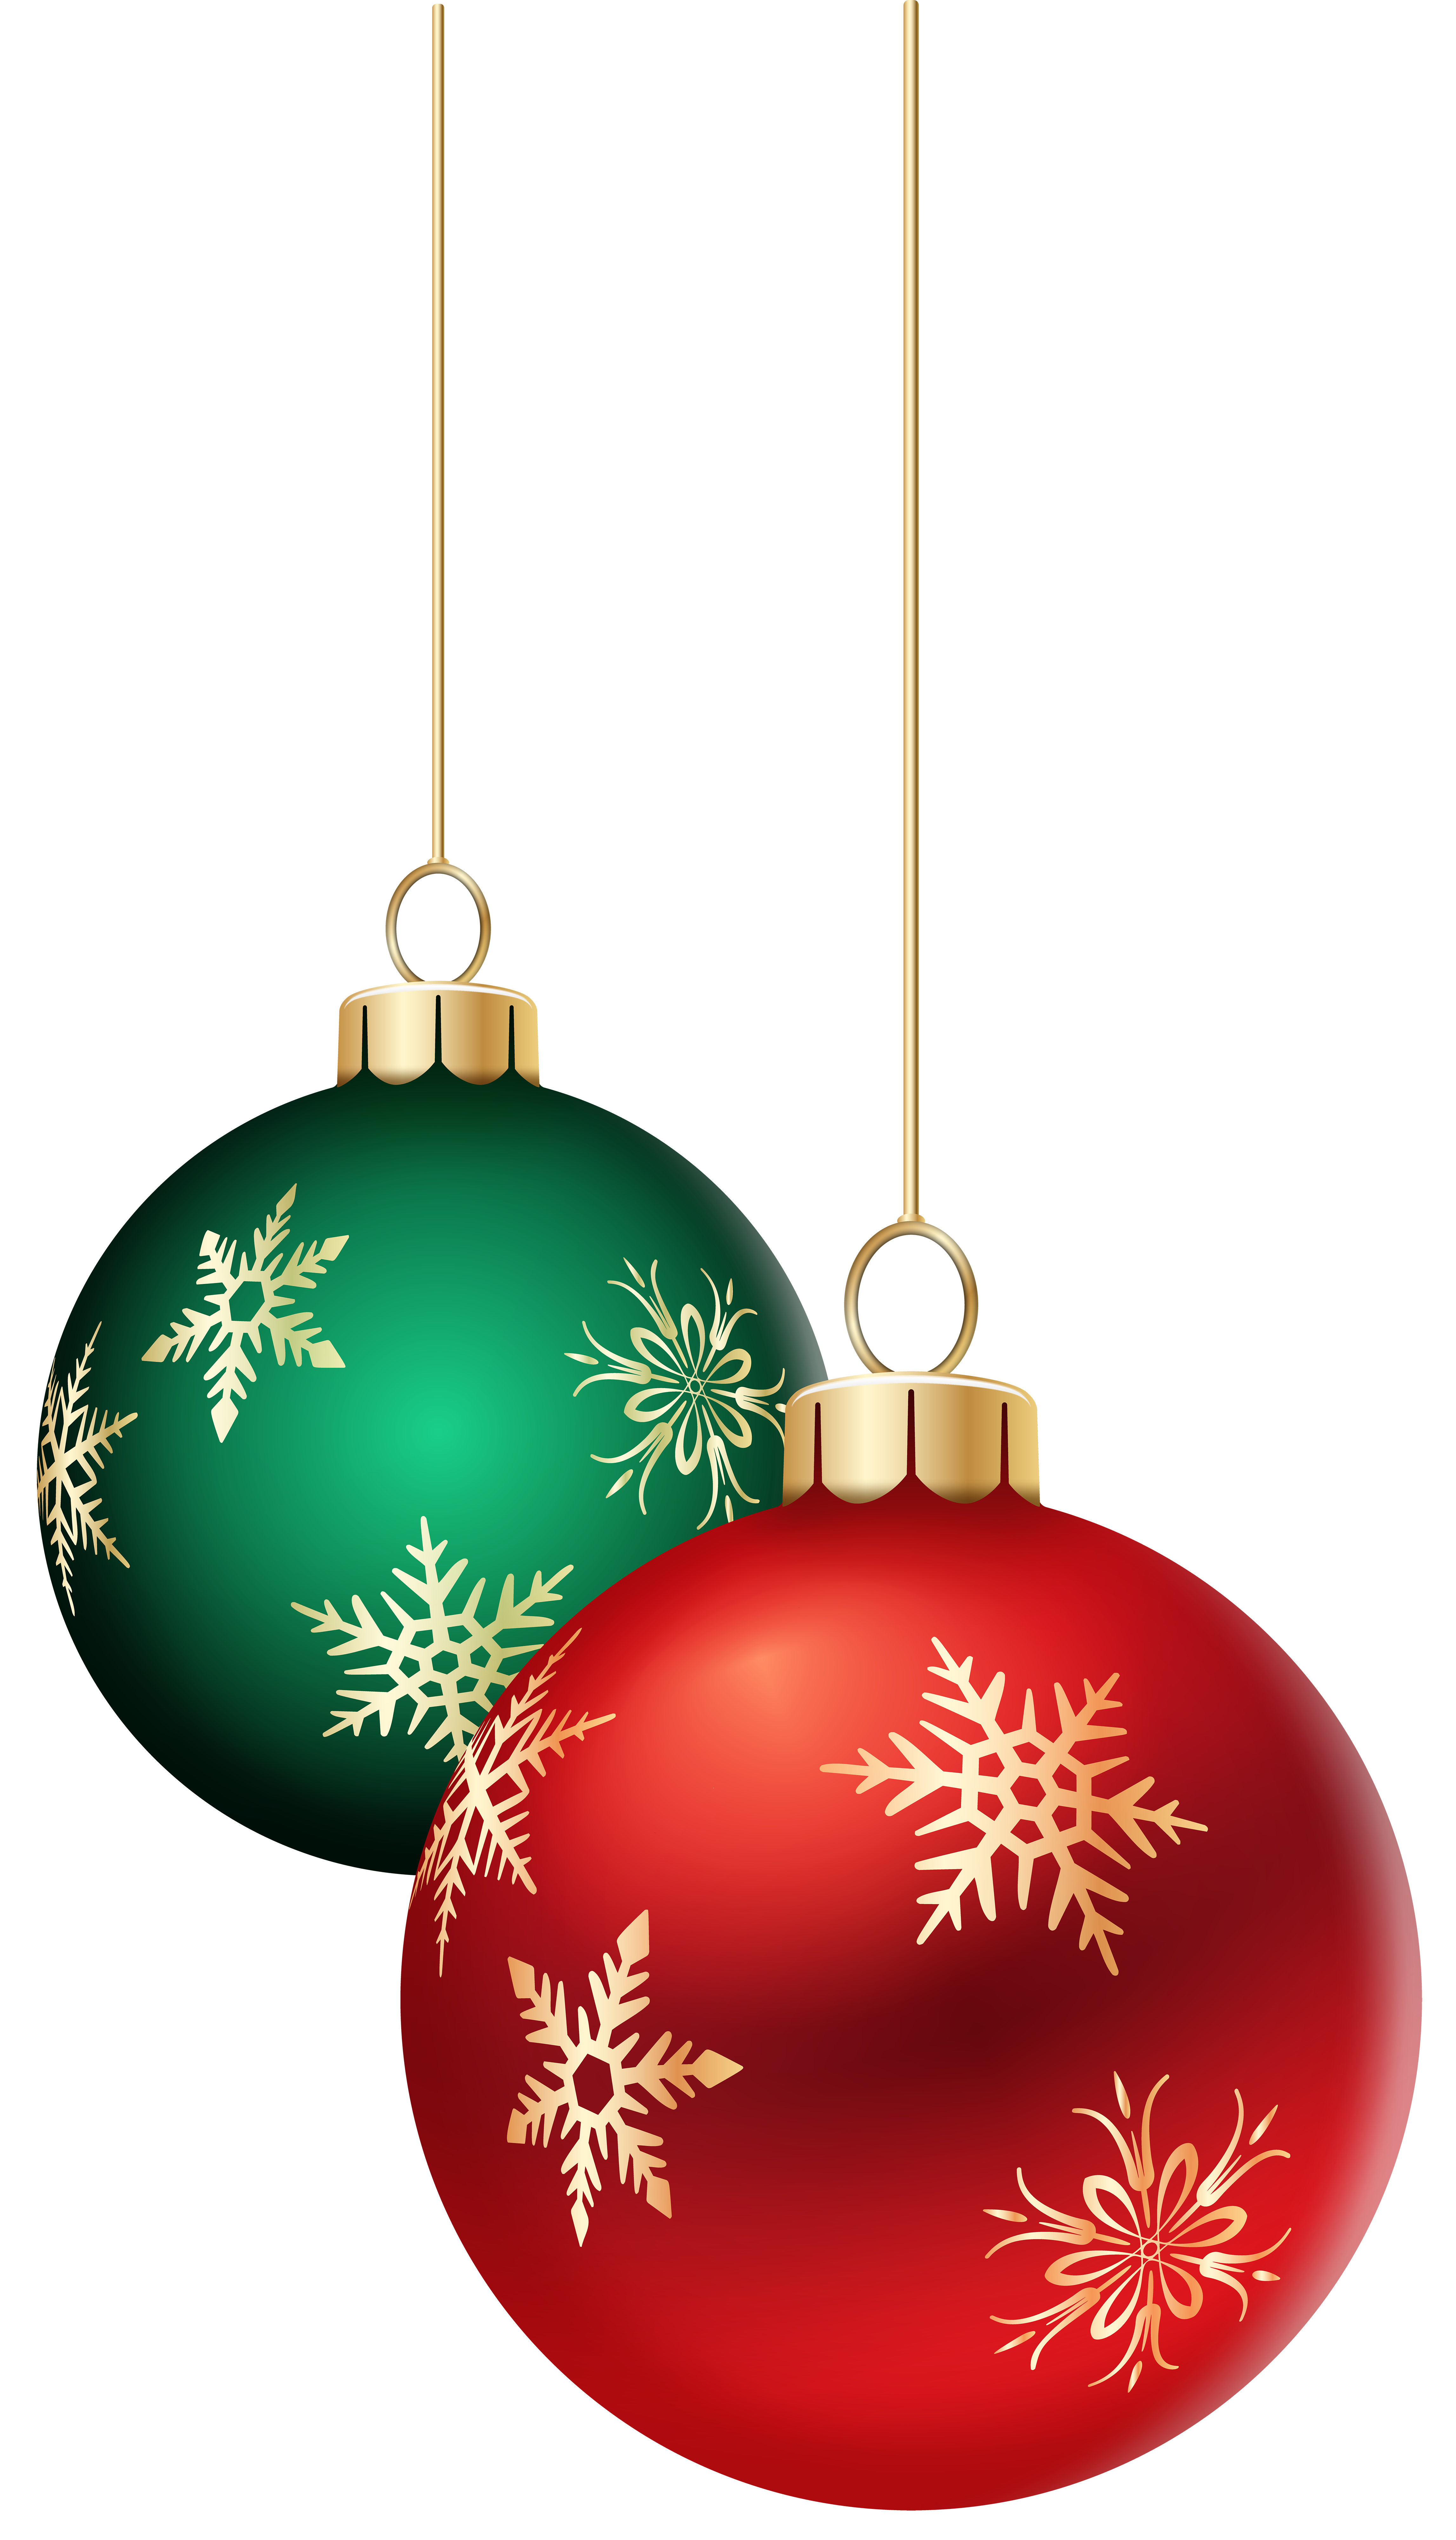 christmas ornaments png transparent 20 free Cliparts ...